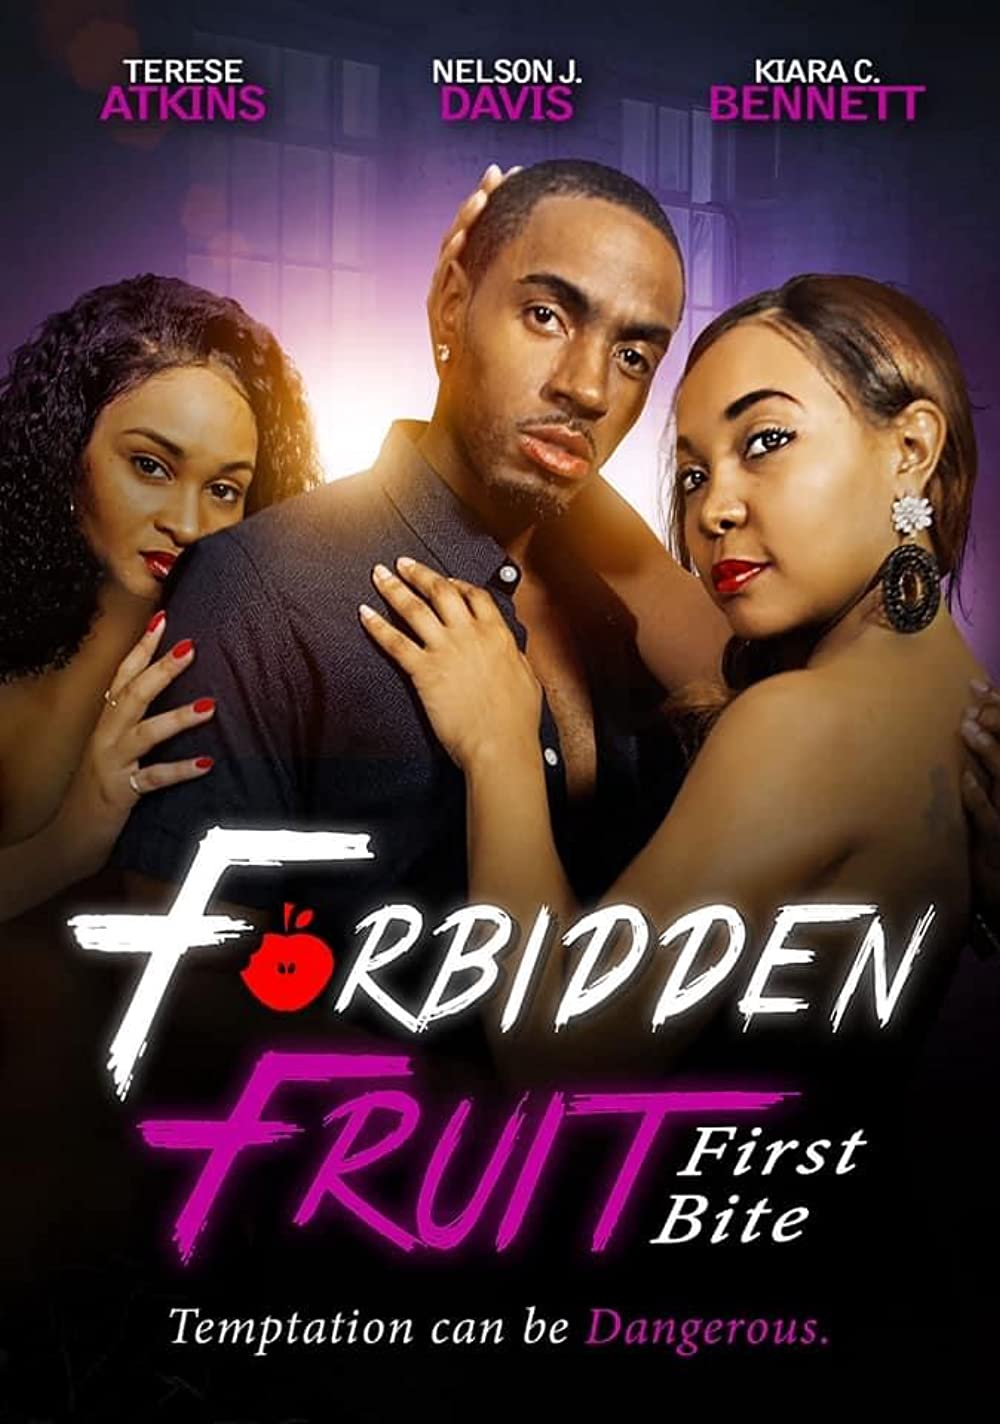 Forbidden Fruit First Bite 2021 English 231MB HDRip ESubs Download